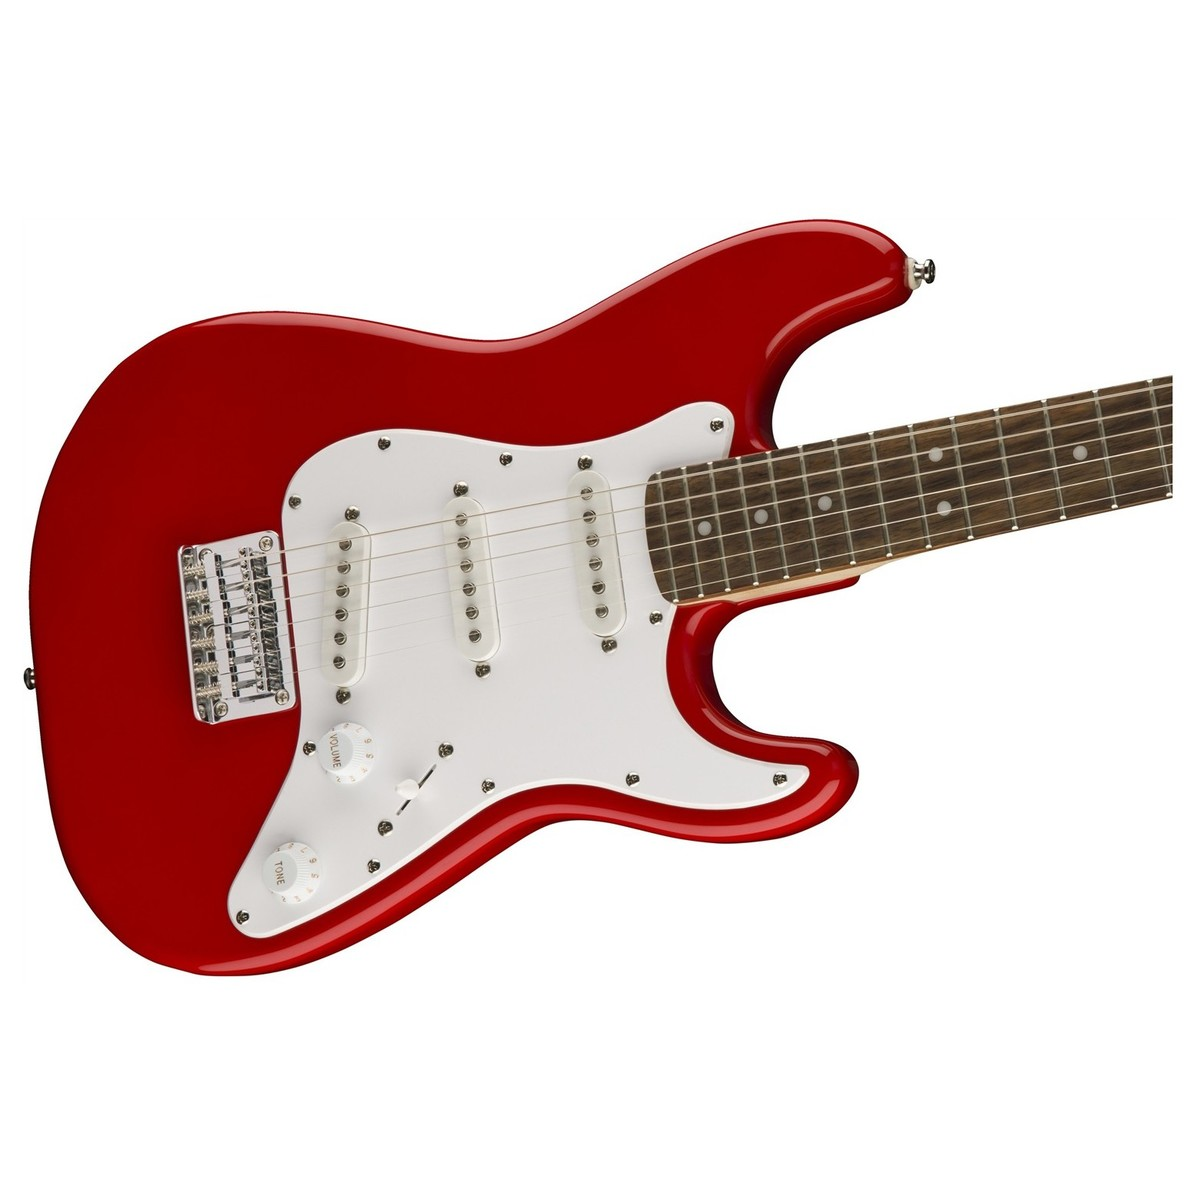 Squier Mini Stratocaster 3/4 Size, Torino Red front angled view. Loading  zoom